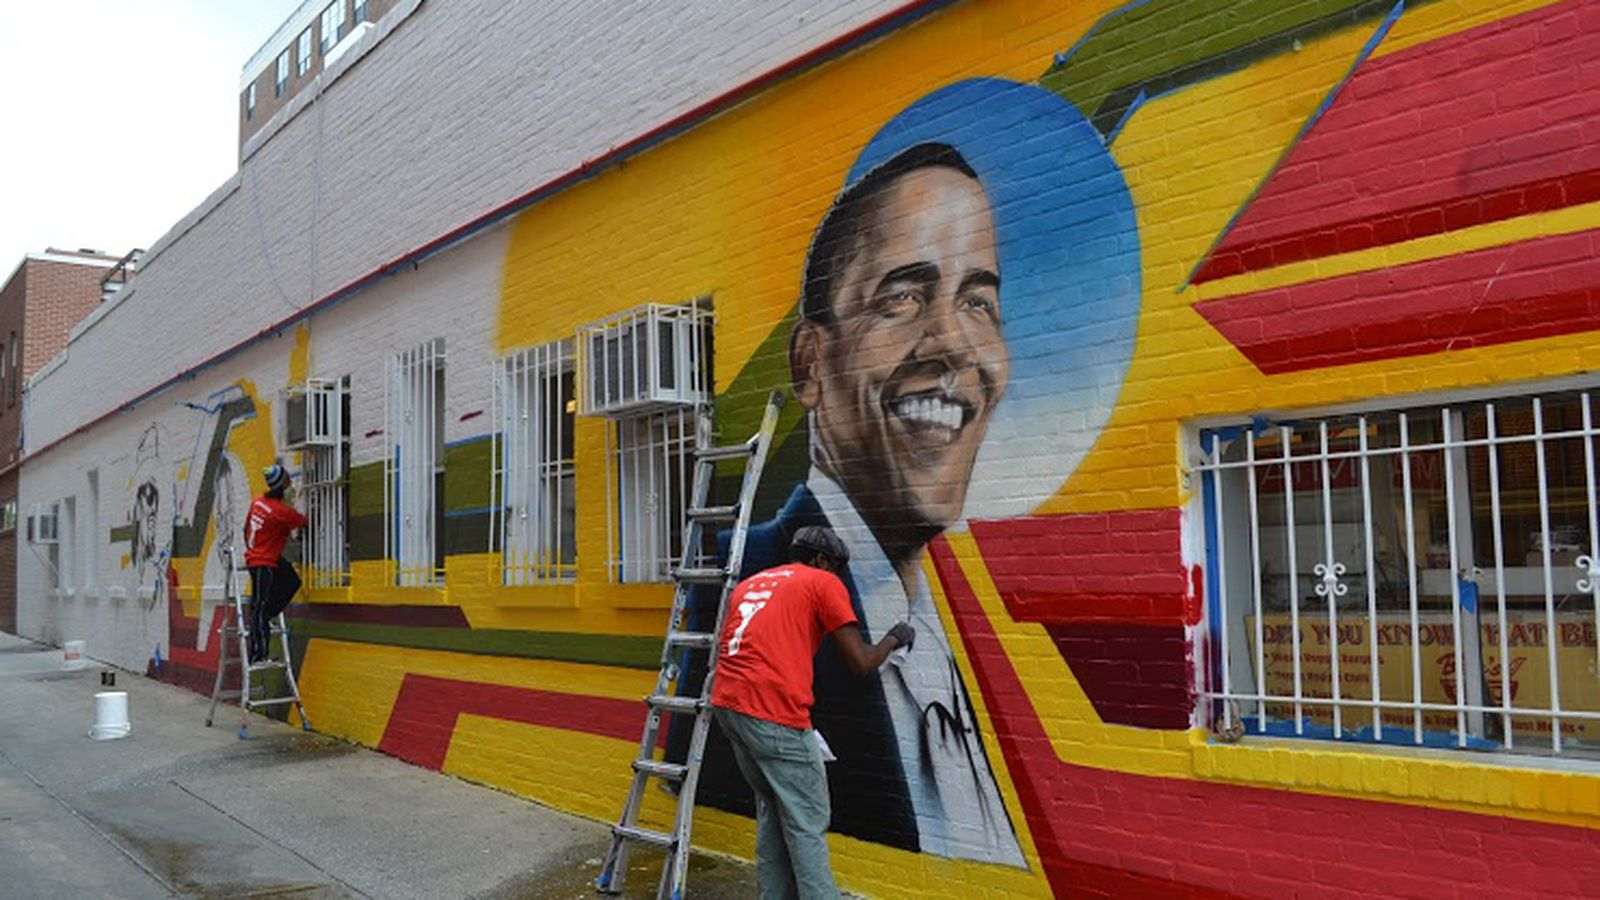 Ben s chili bowl mural to start from scratch eater dc for Chuck brown mural